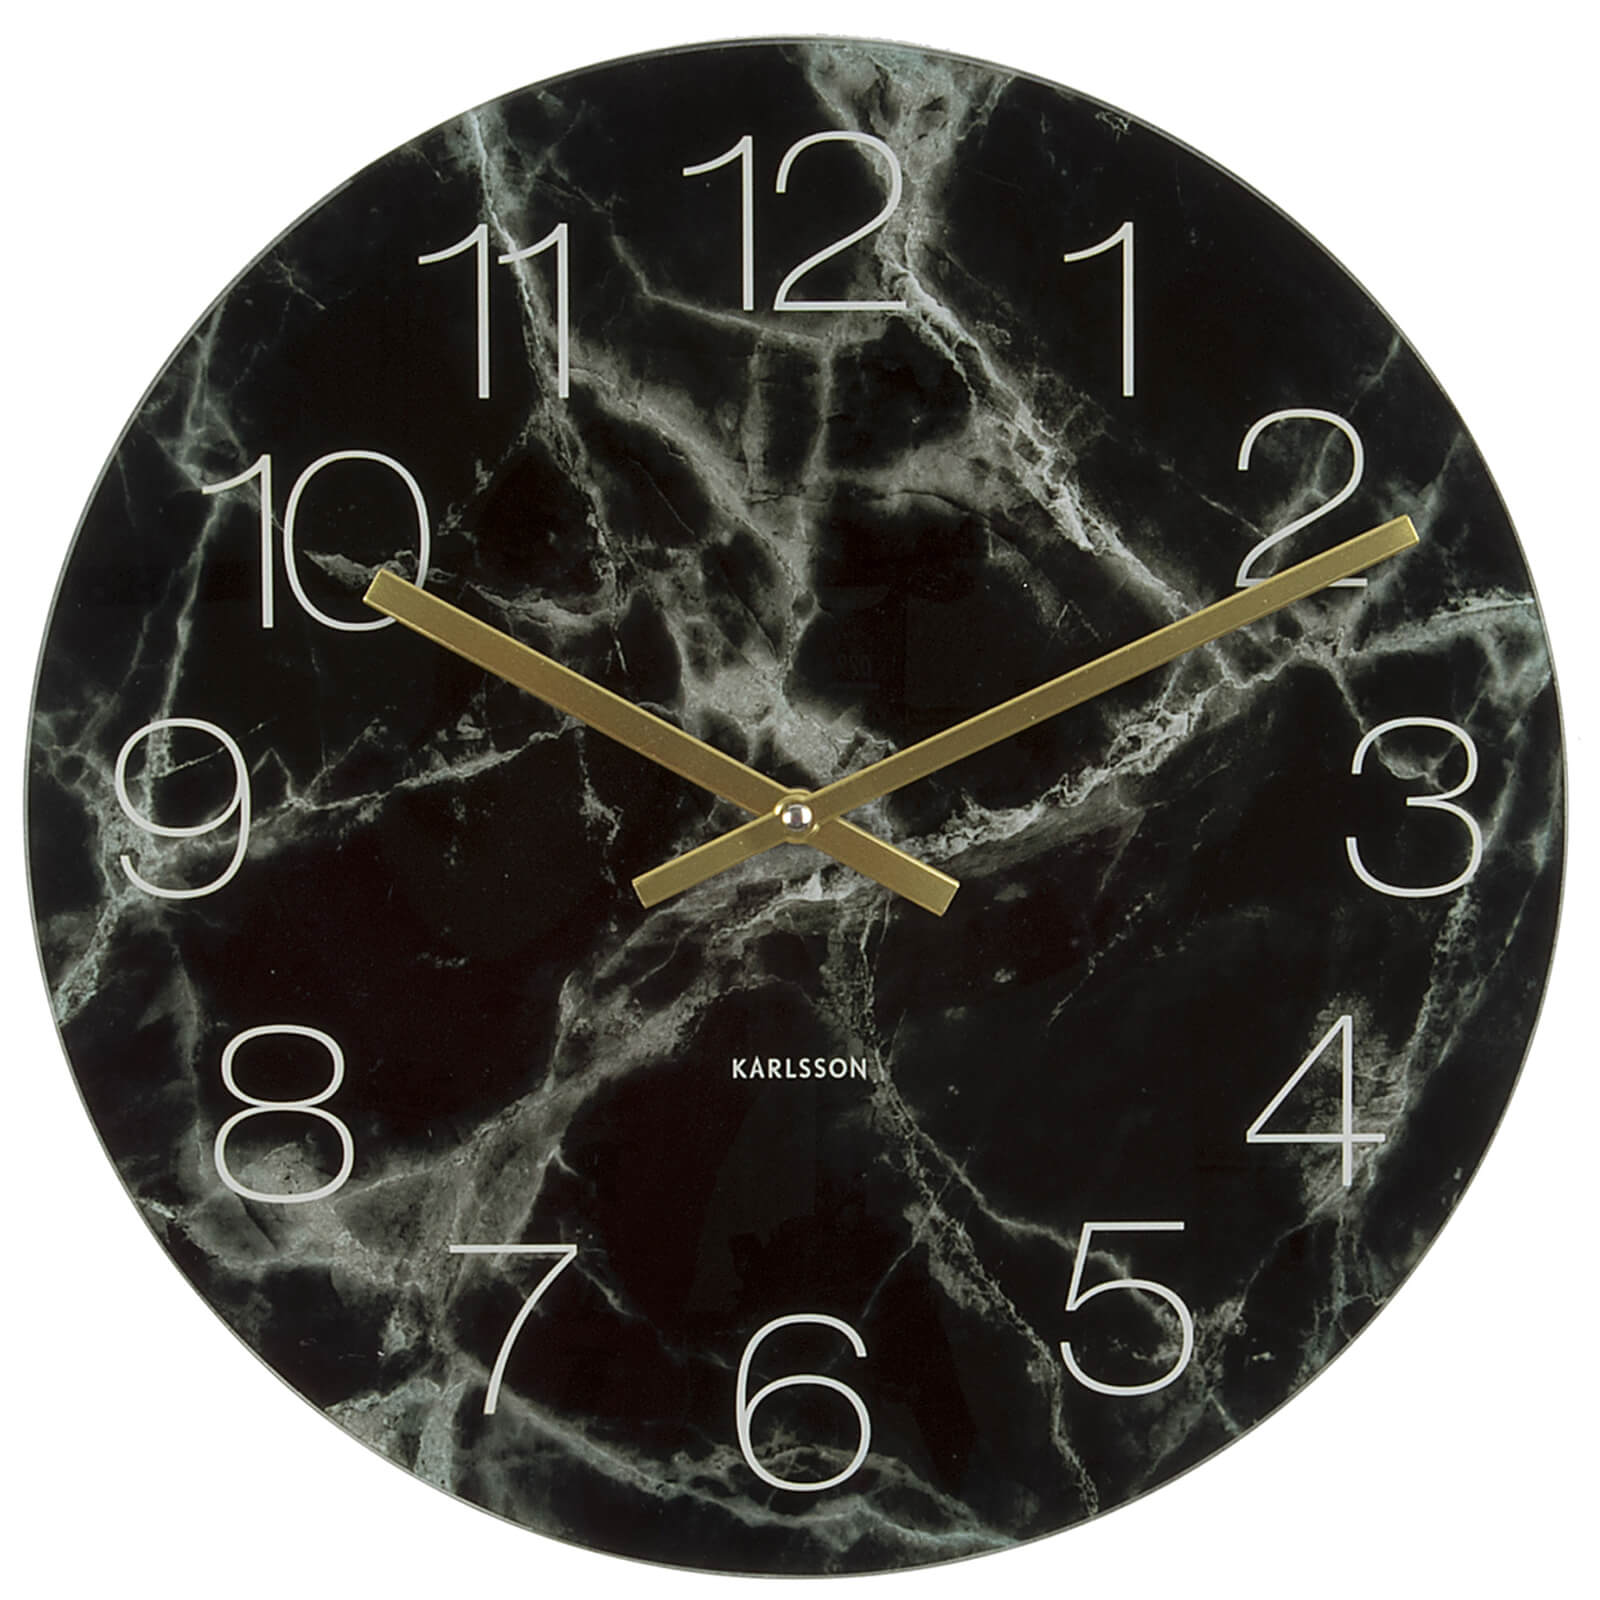 Karlsson Small Glass Marble Wall Clock - Black